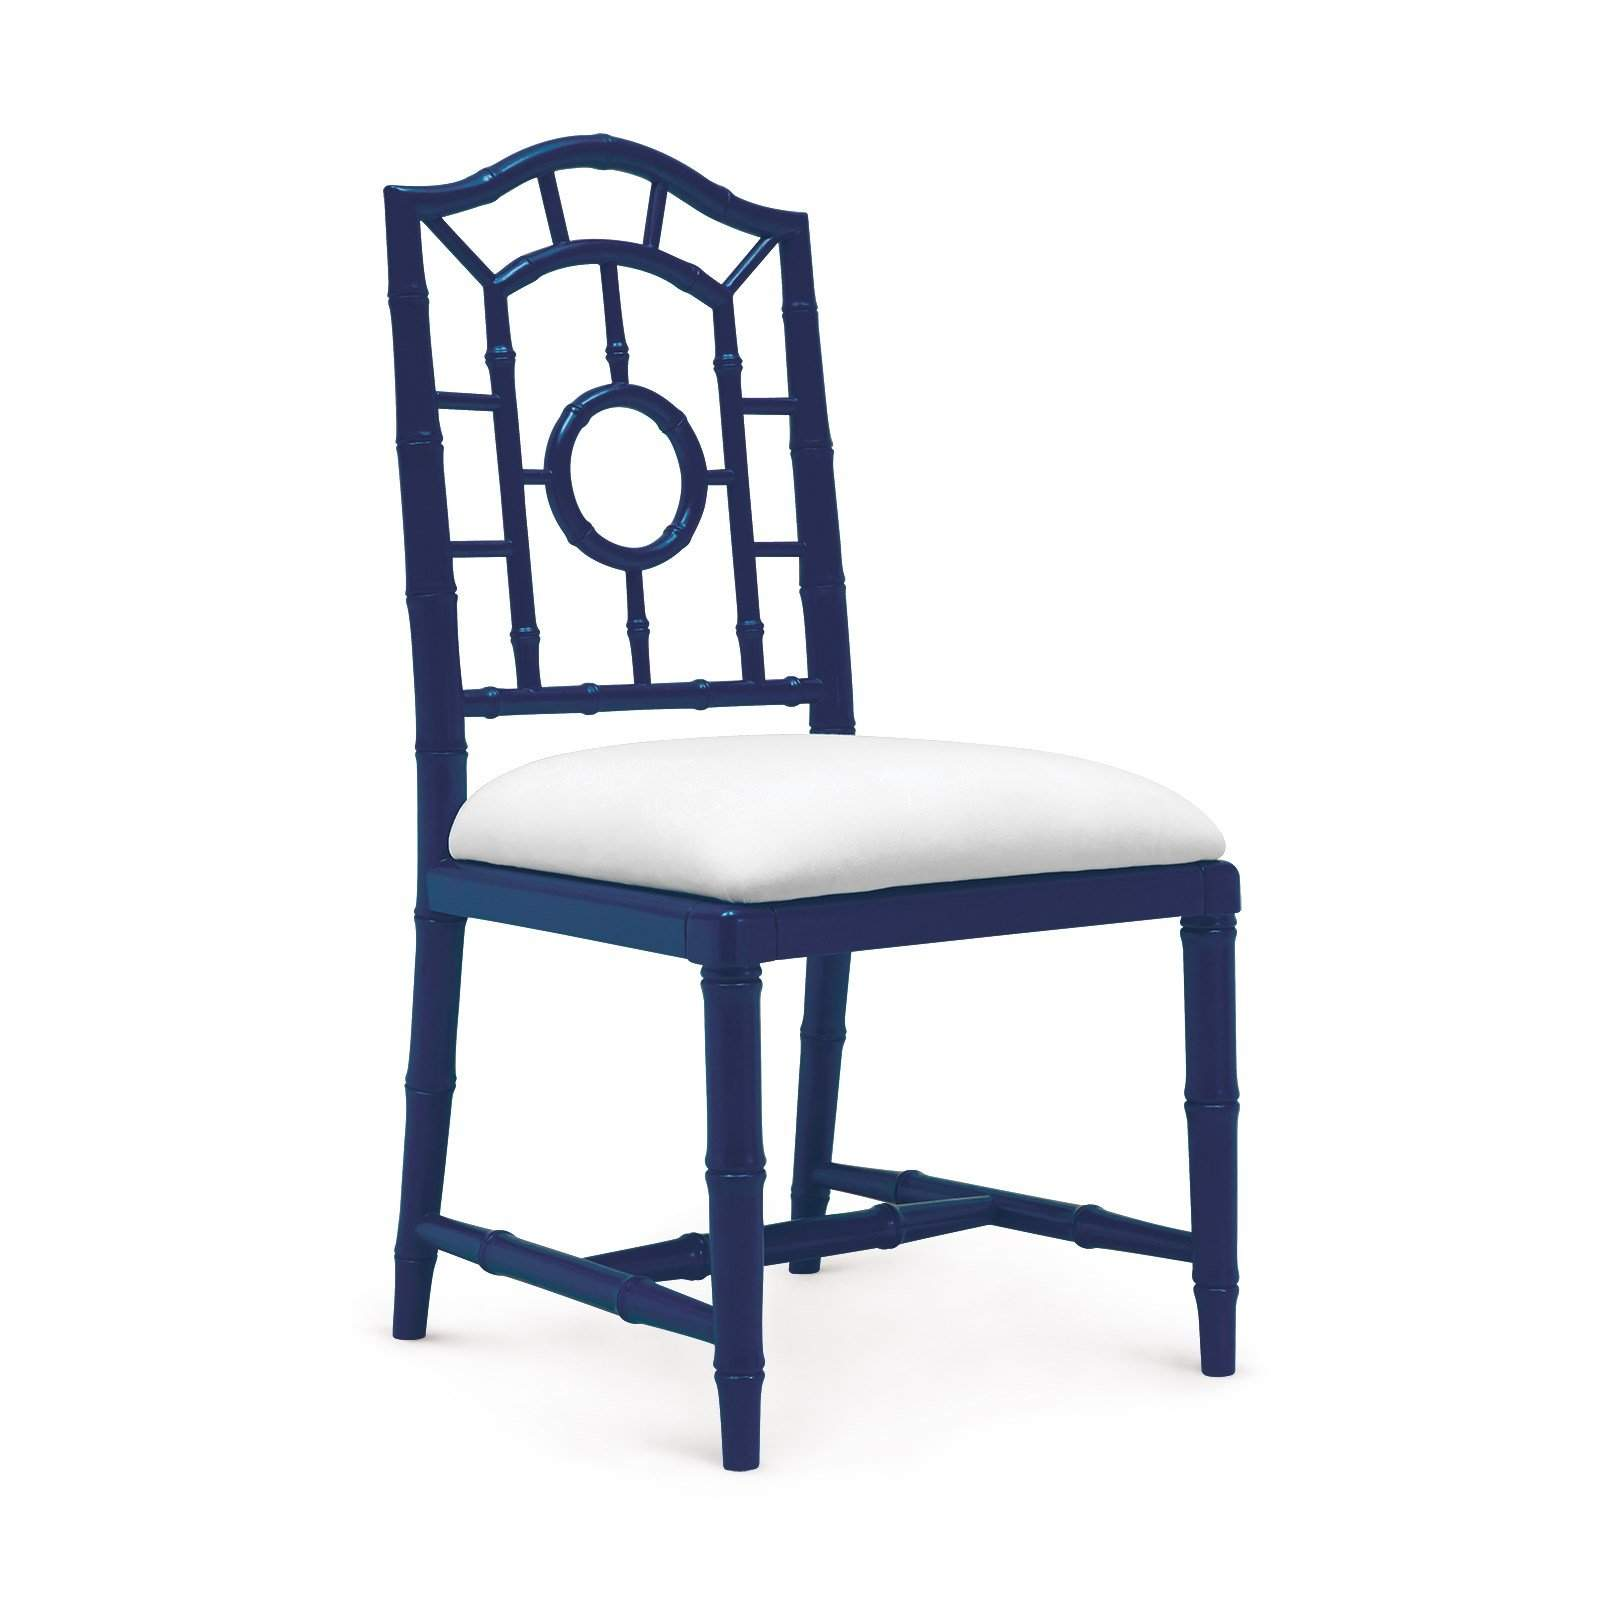 Bungalow 5 - CHLOE SIDE CHAIR in NAVY BLUE